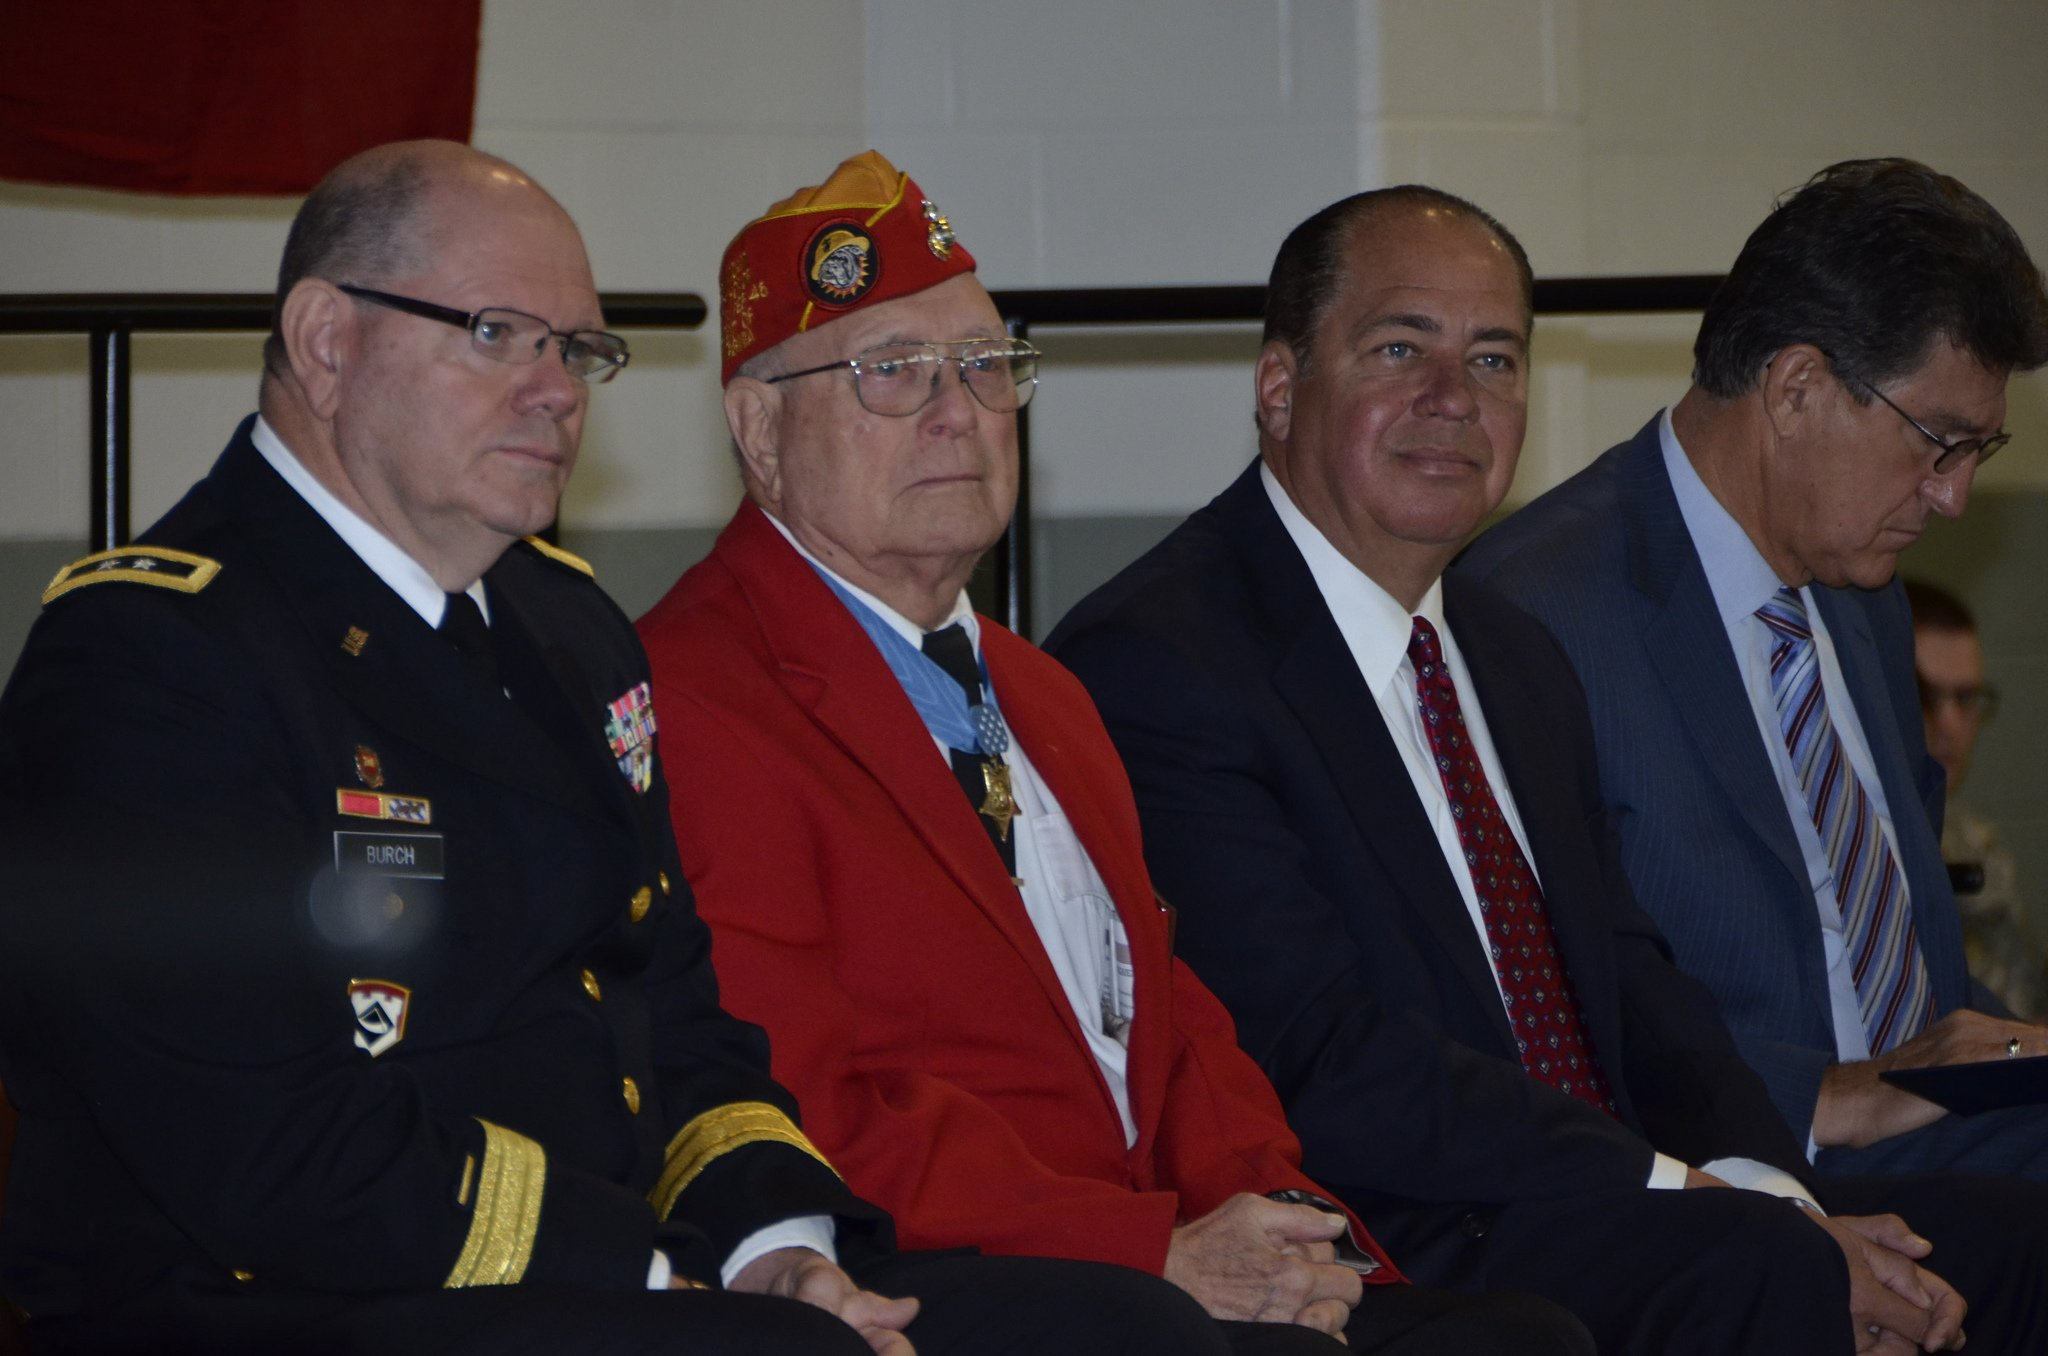 MG Burch, Woody Williams, Governor Tomblin, and Senator Manchin listen to the Adjutant General of the West Virginia National Guard speak at the dedication ceremony. Woody Williams is the only living Medal of Honor Recipient from Iwo Jima.